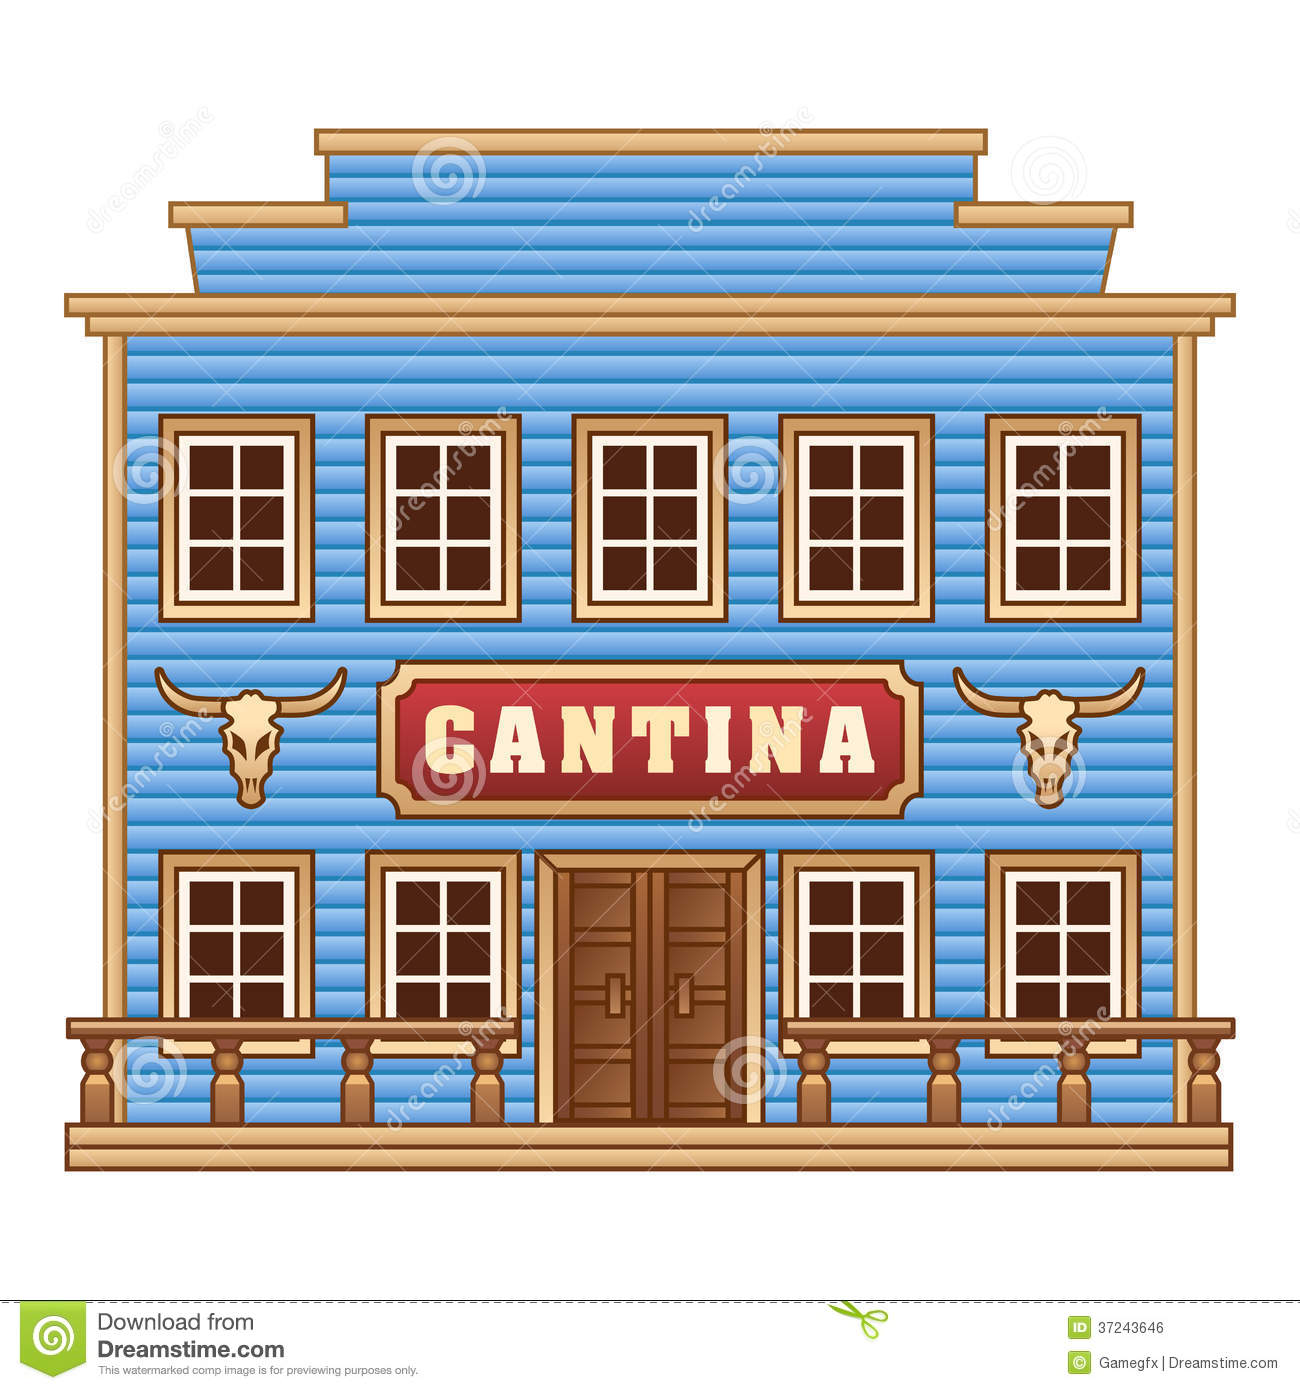 Cantina Stock Illustrations.